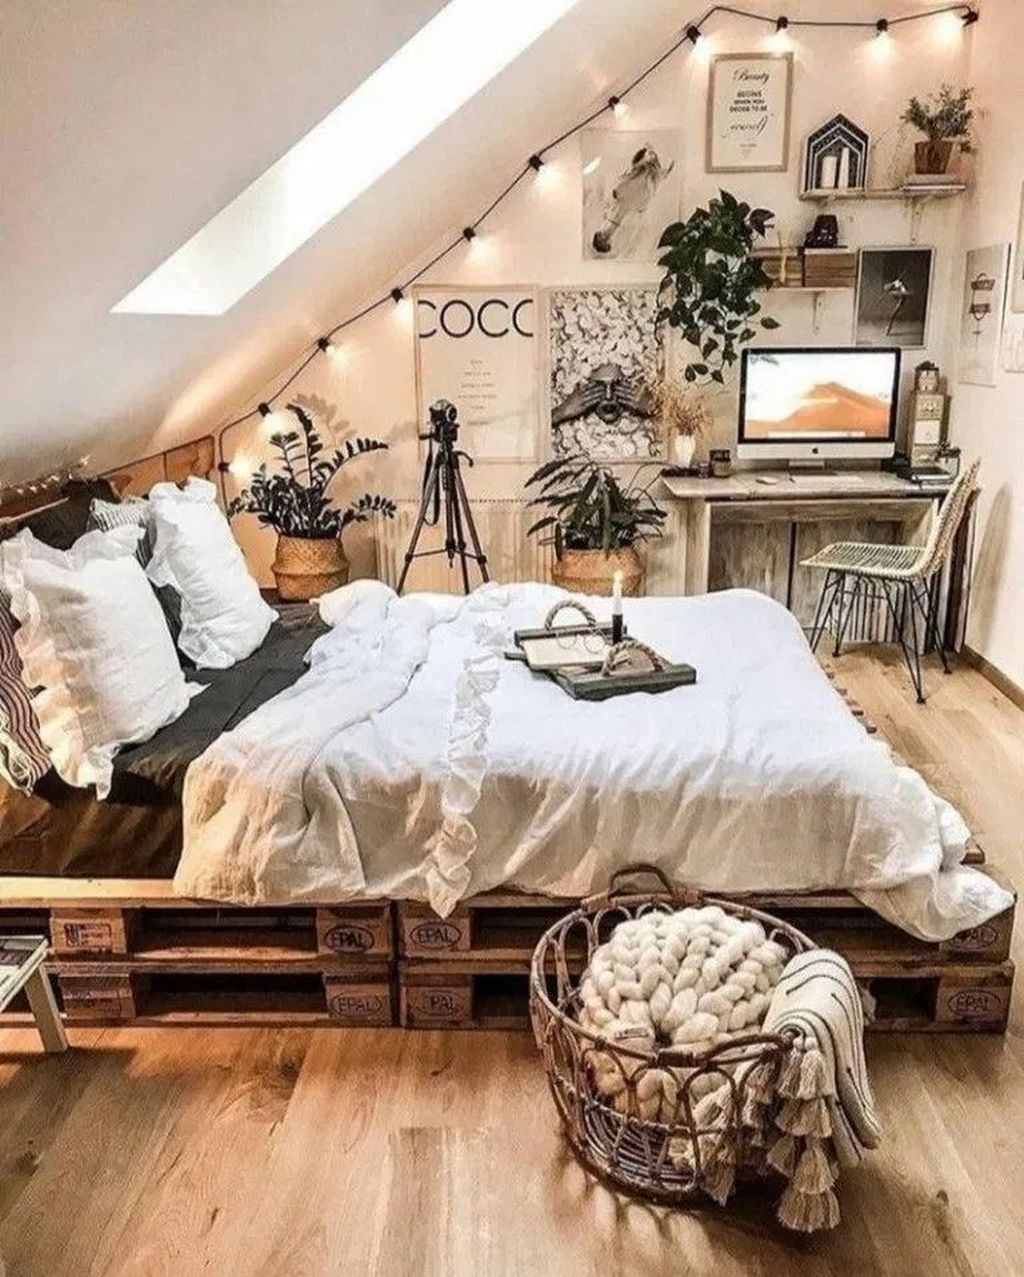 30 Fabulous Moroccan Bedroom Decor Ideas In 2020 Small Apartment